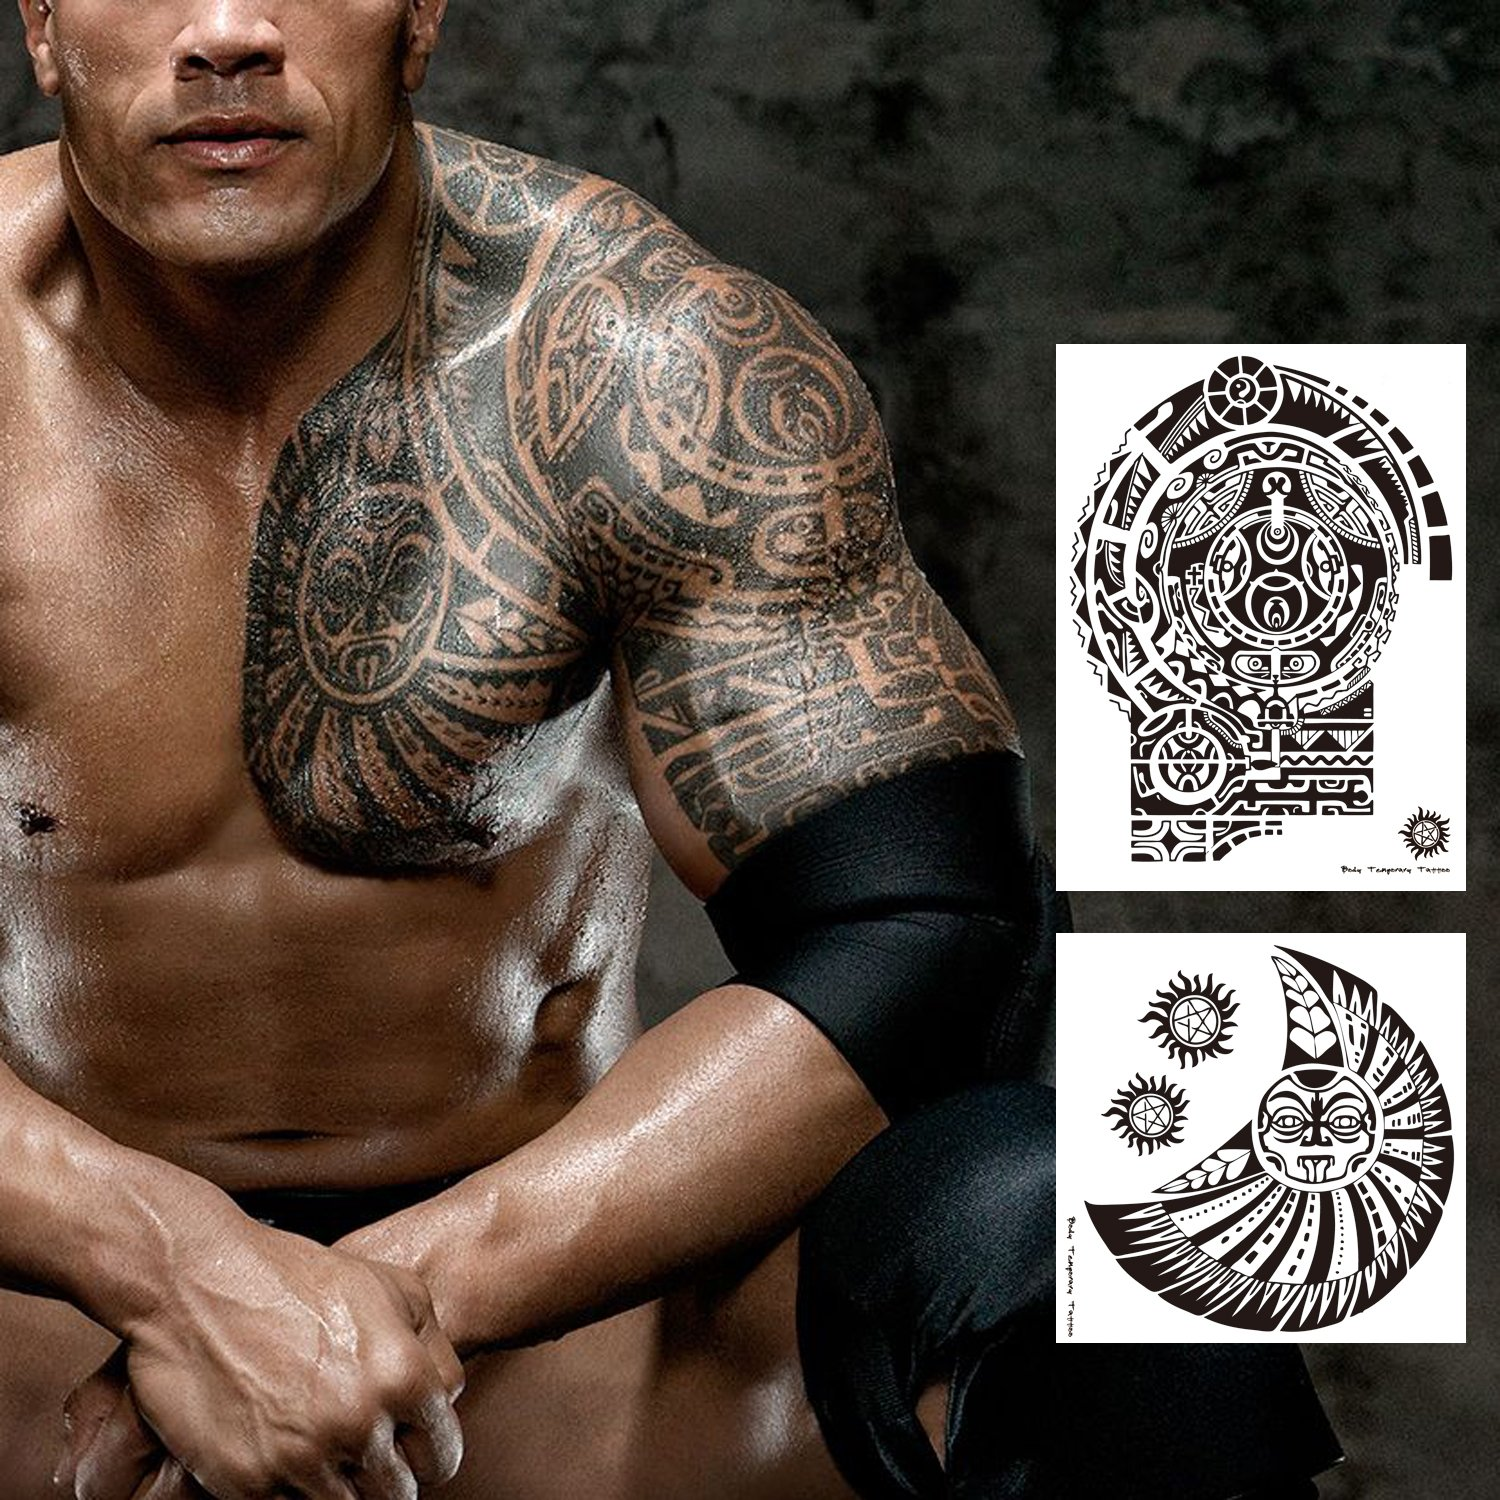 a91f3bab27500 Amazon.com : Leoars 2 Sheets Extra Large Temporary Tattoo Similar The Rock  Arm Chest Big Totem Body Tattoos Sticker for Men Women Make Up Waterproof  Fake ...